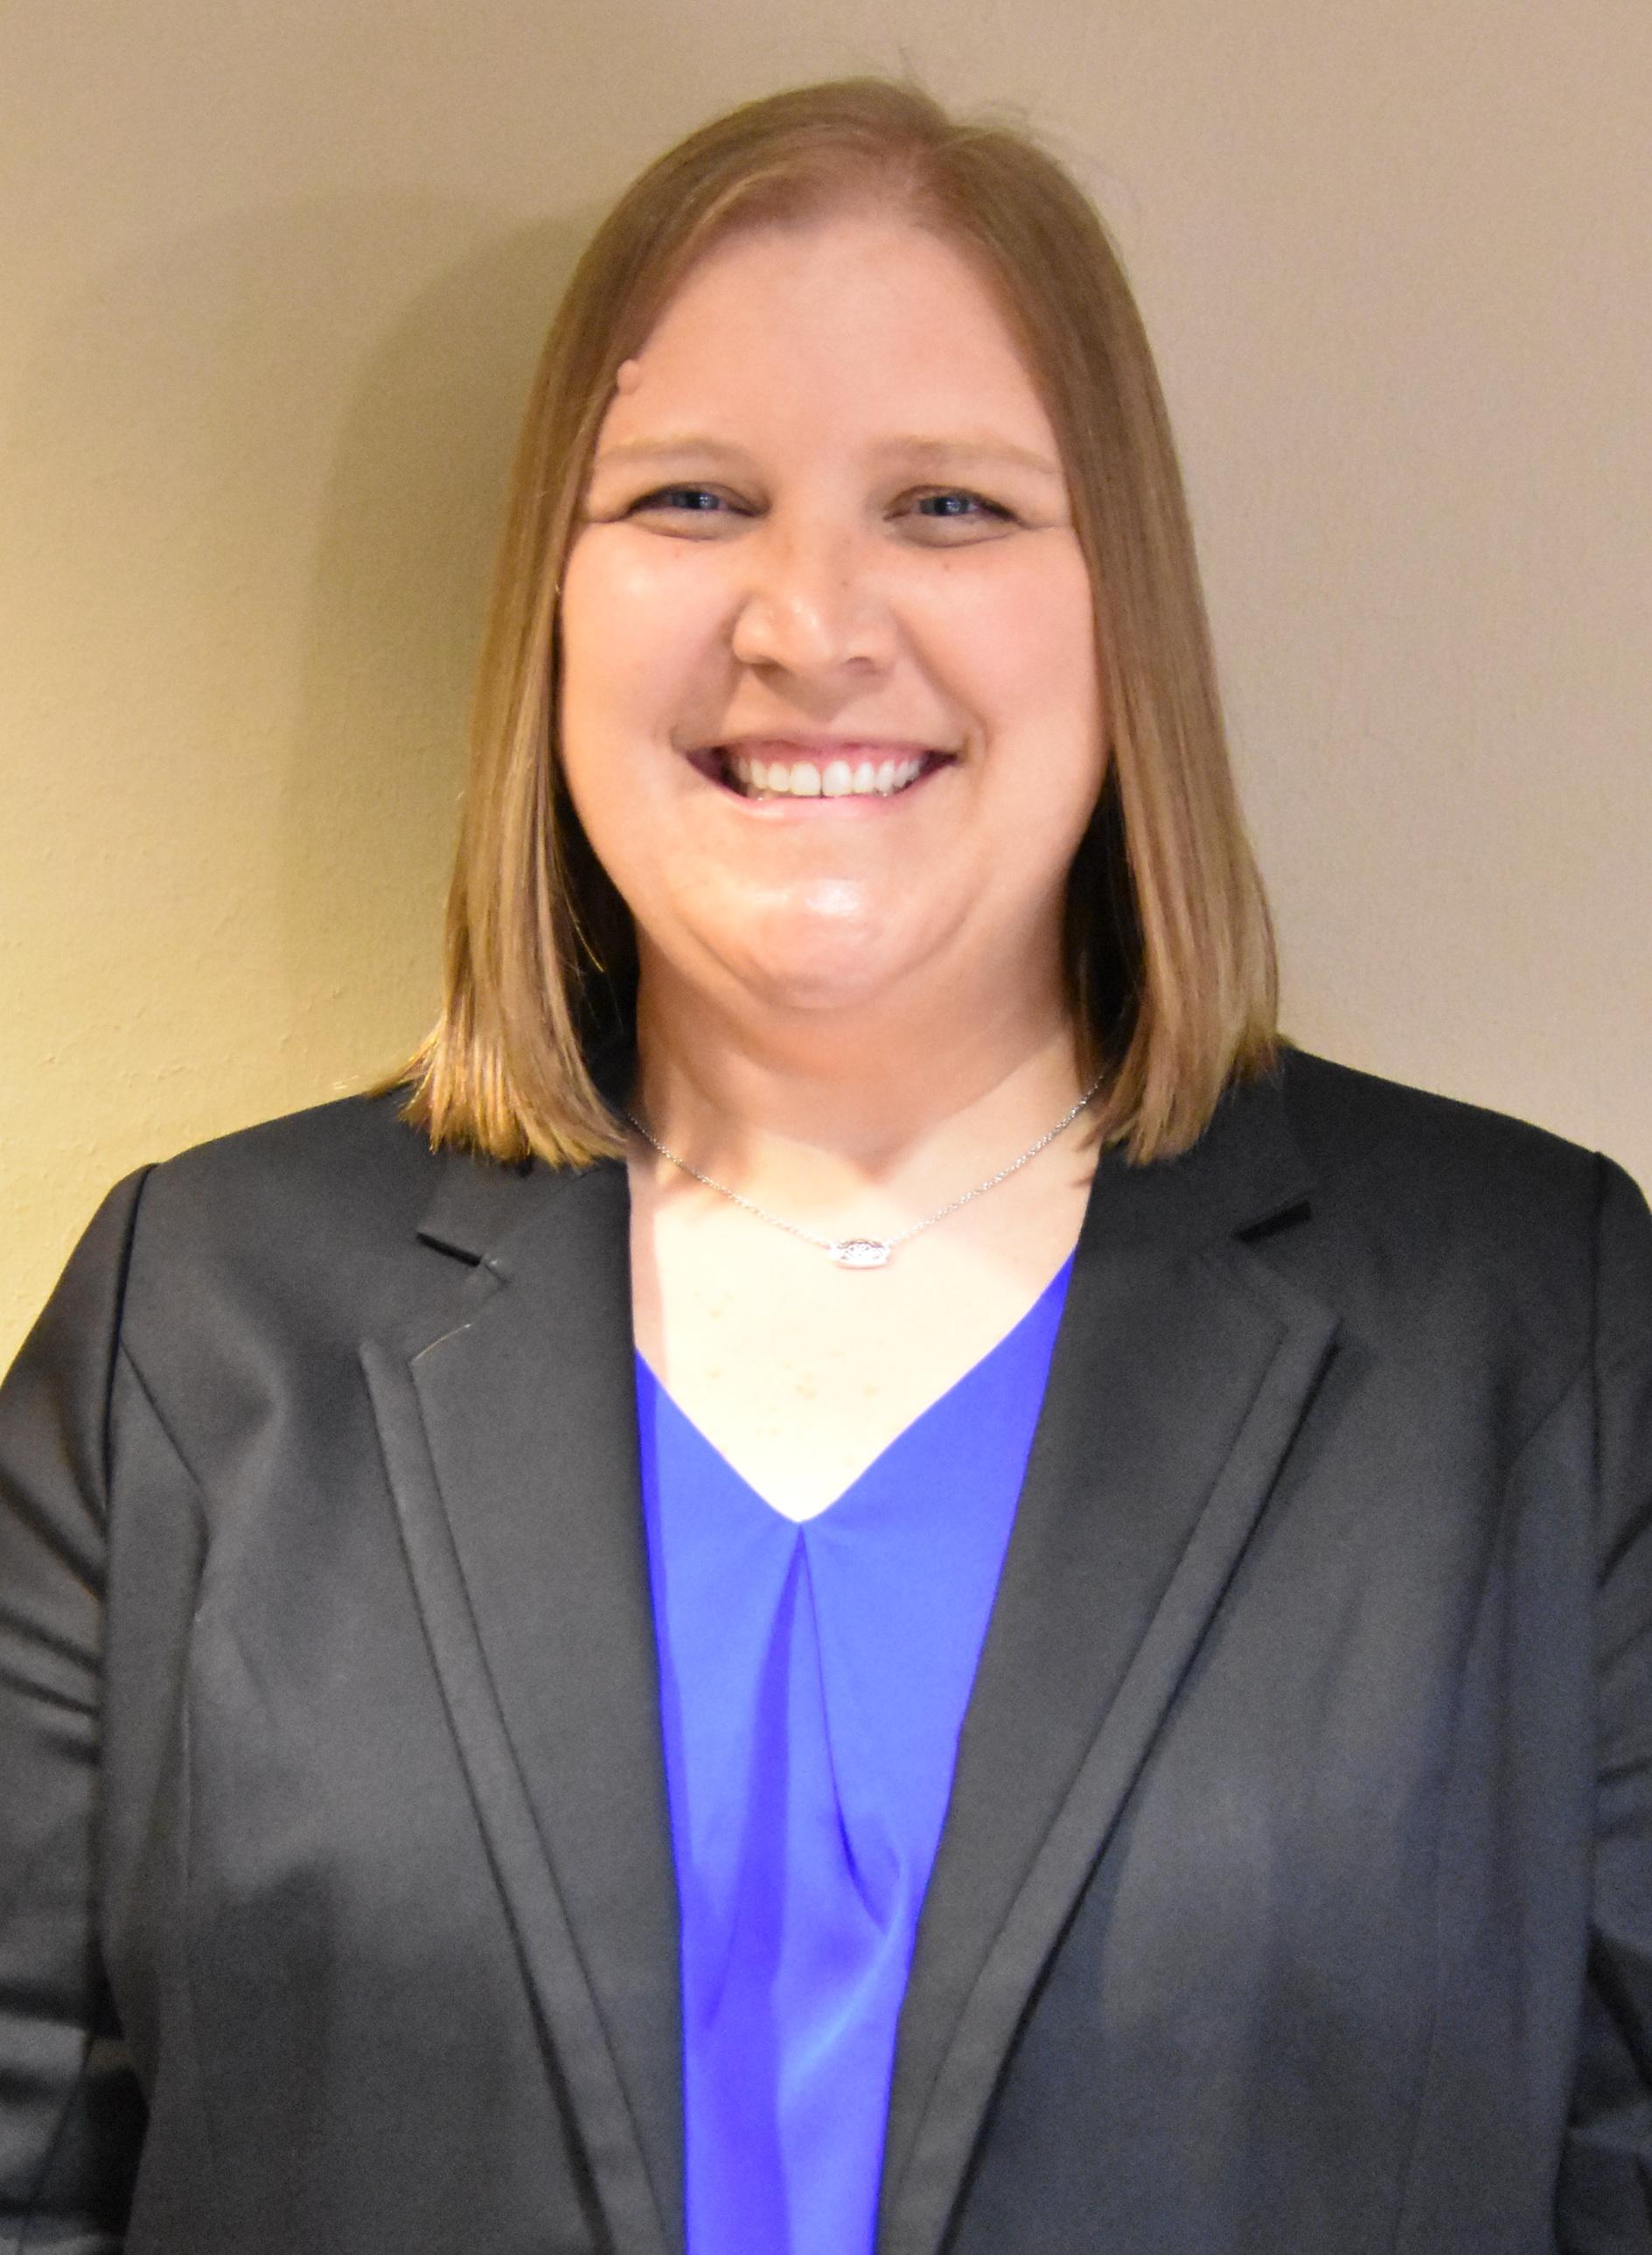 Brewer Middle School Assistant Principal Emily Estes to Lead Blue Haze Elementary